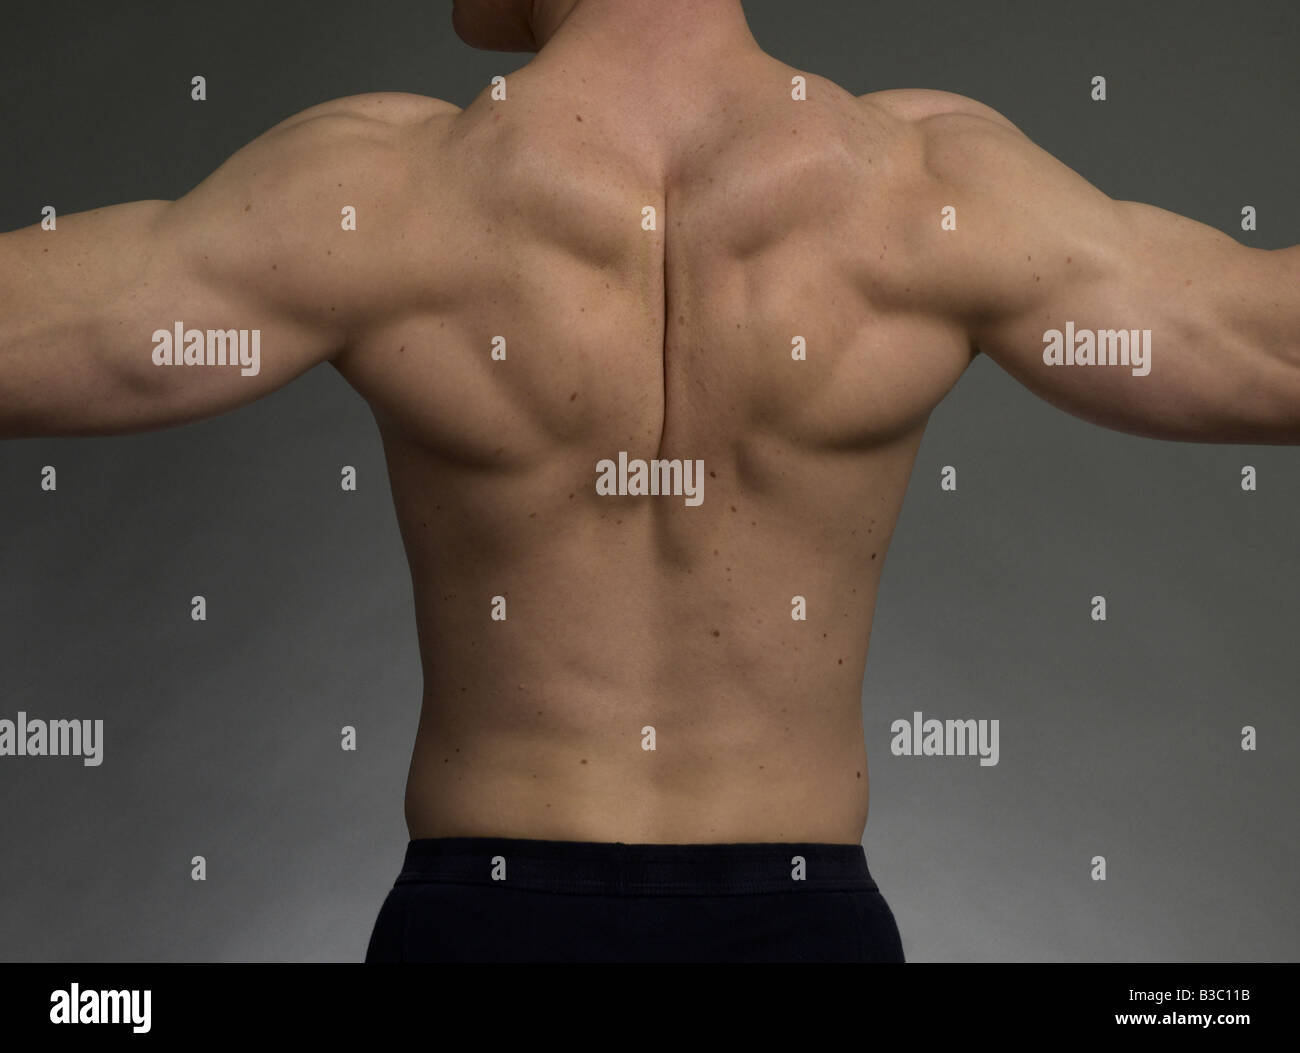 Defined Back Muscles Stock Photos & Defined Back Muscles Stock ...